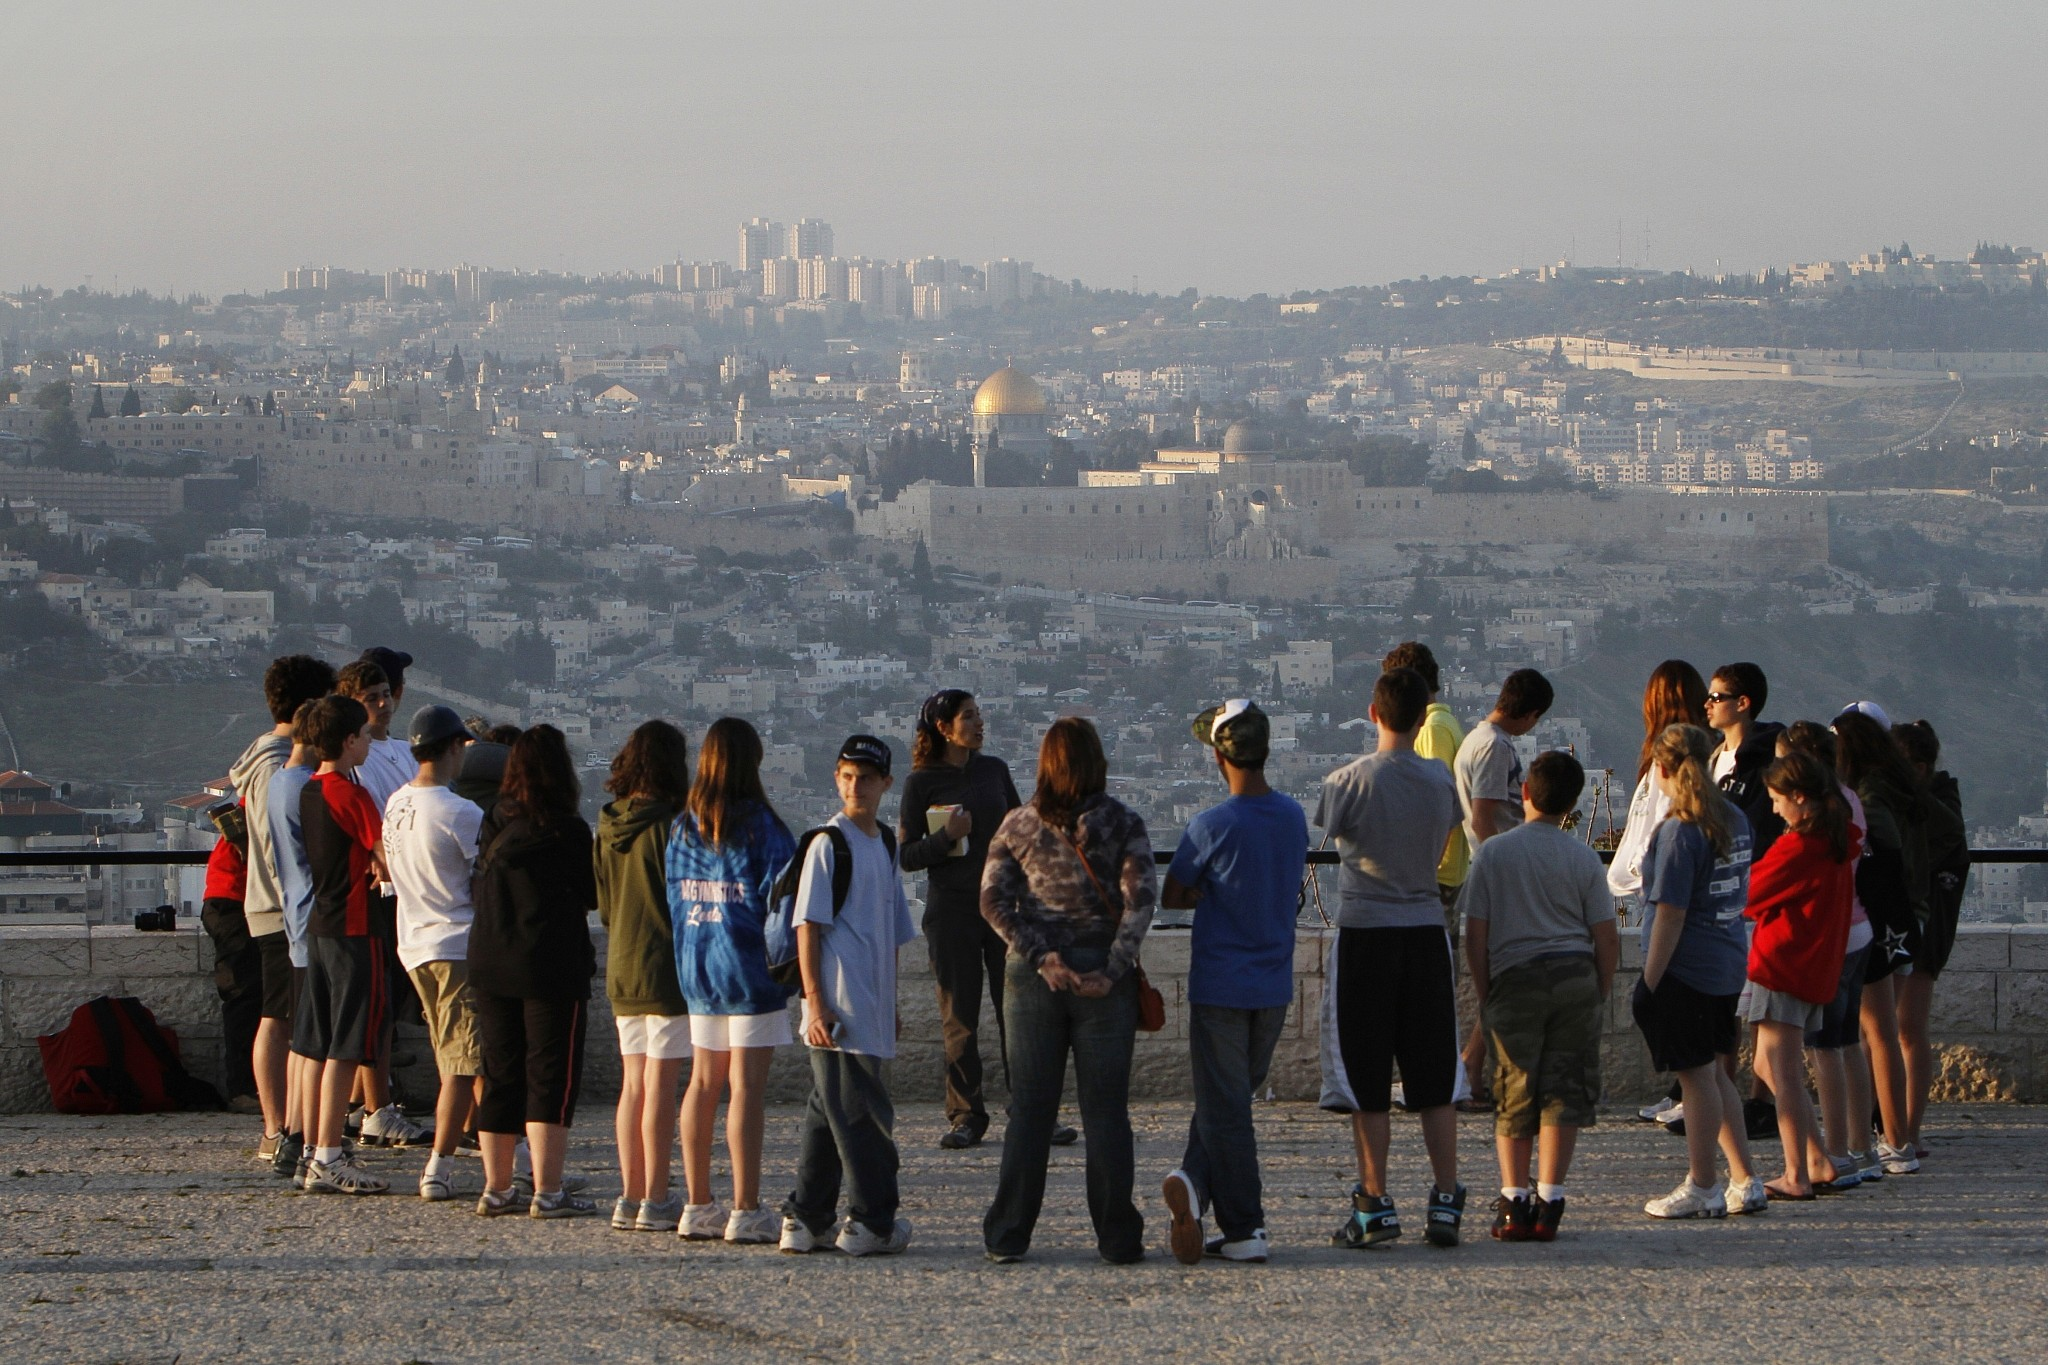 A tour group listens to a guide at the Armon HaNatziv Promenade in Jerusalem against the backdrop of the Old City, April 14, 2010. (Miriam Alster/Flash90)